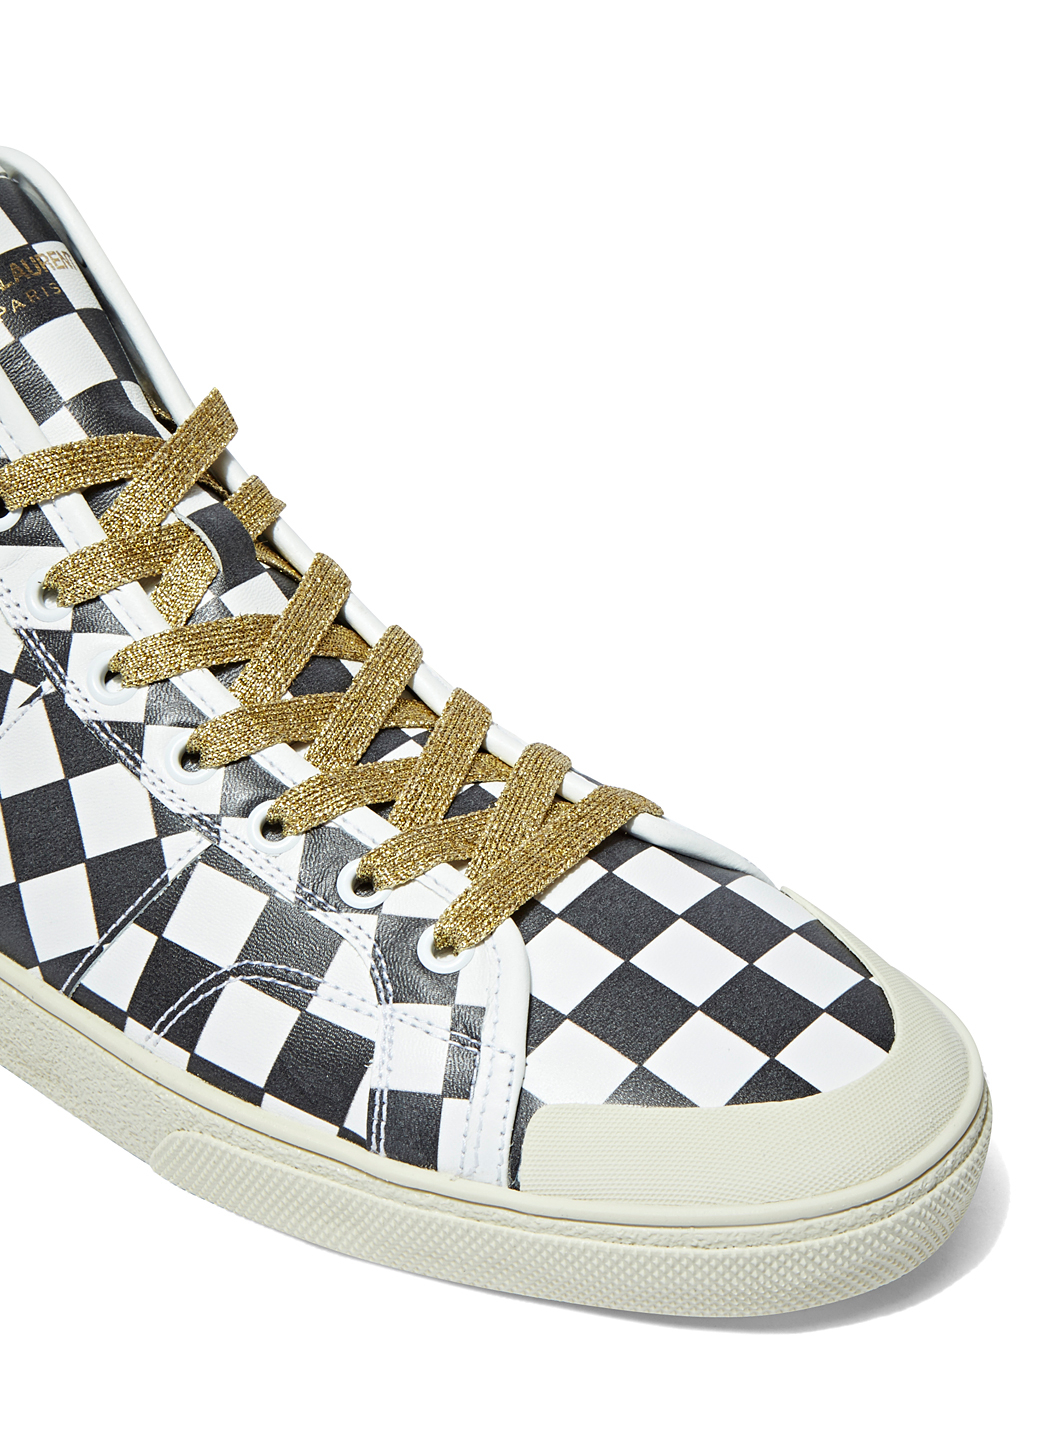 saint laurent men 39 s checked high top sneakers in black and white in black for men lyst. Black Bedroom Furniture Sets. Home Design Ideas